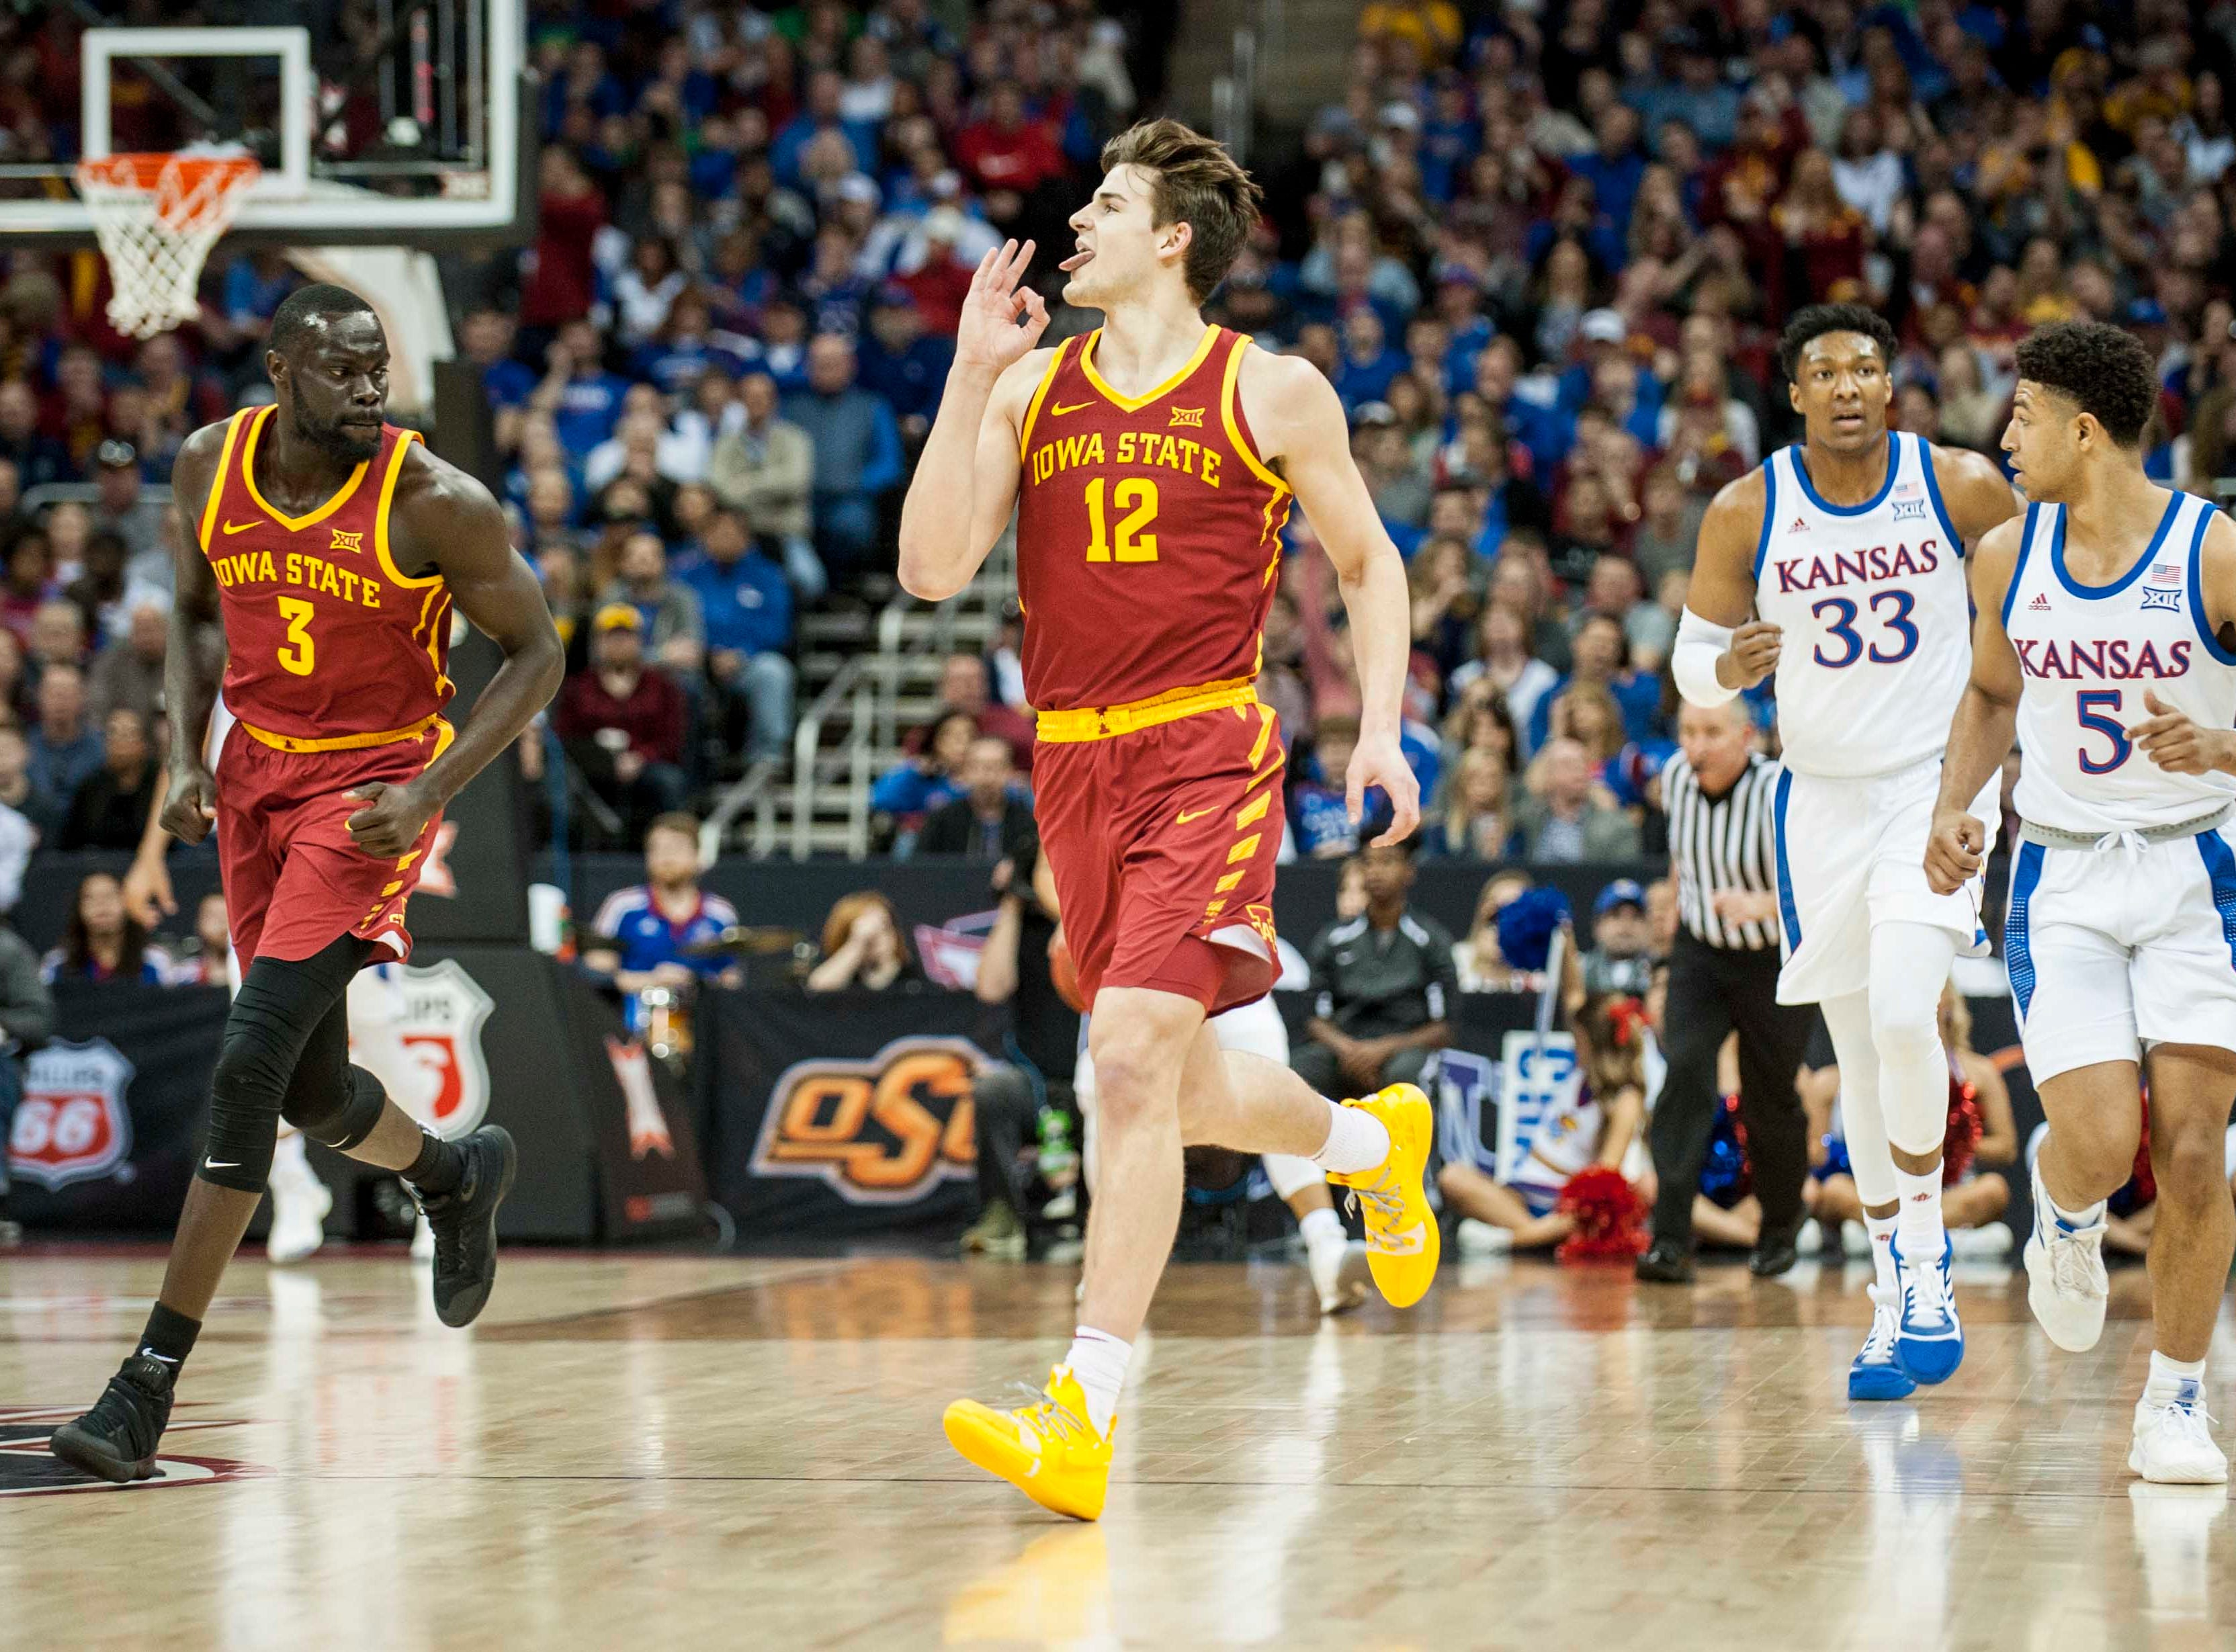 Mar 16, 2019; Kansas City, MO, USA; Iowa State Cyclones forward Michael Jacobson (12) celebrates after making a three-point shot against the Kansas Jayhawks during the first half of the final of the Big 12 conference tournament at Sprint Center.